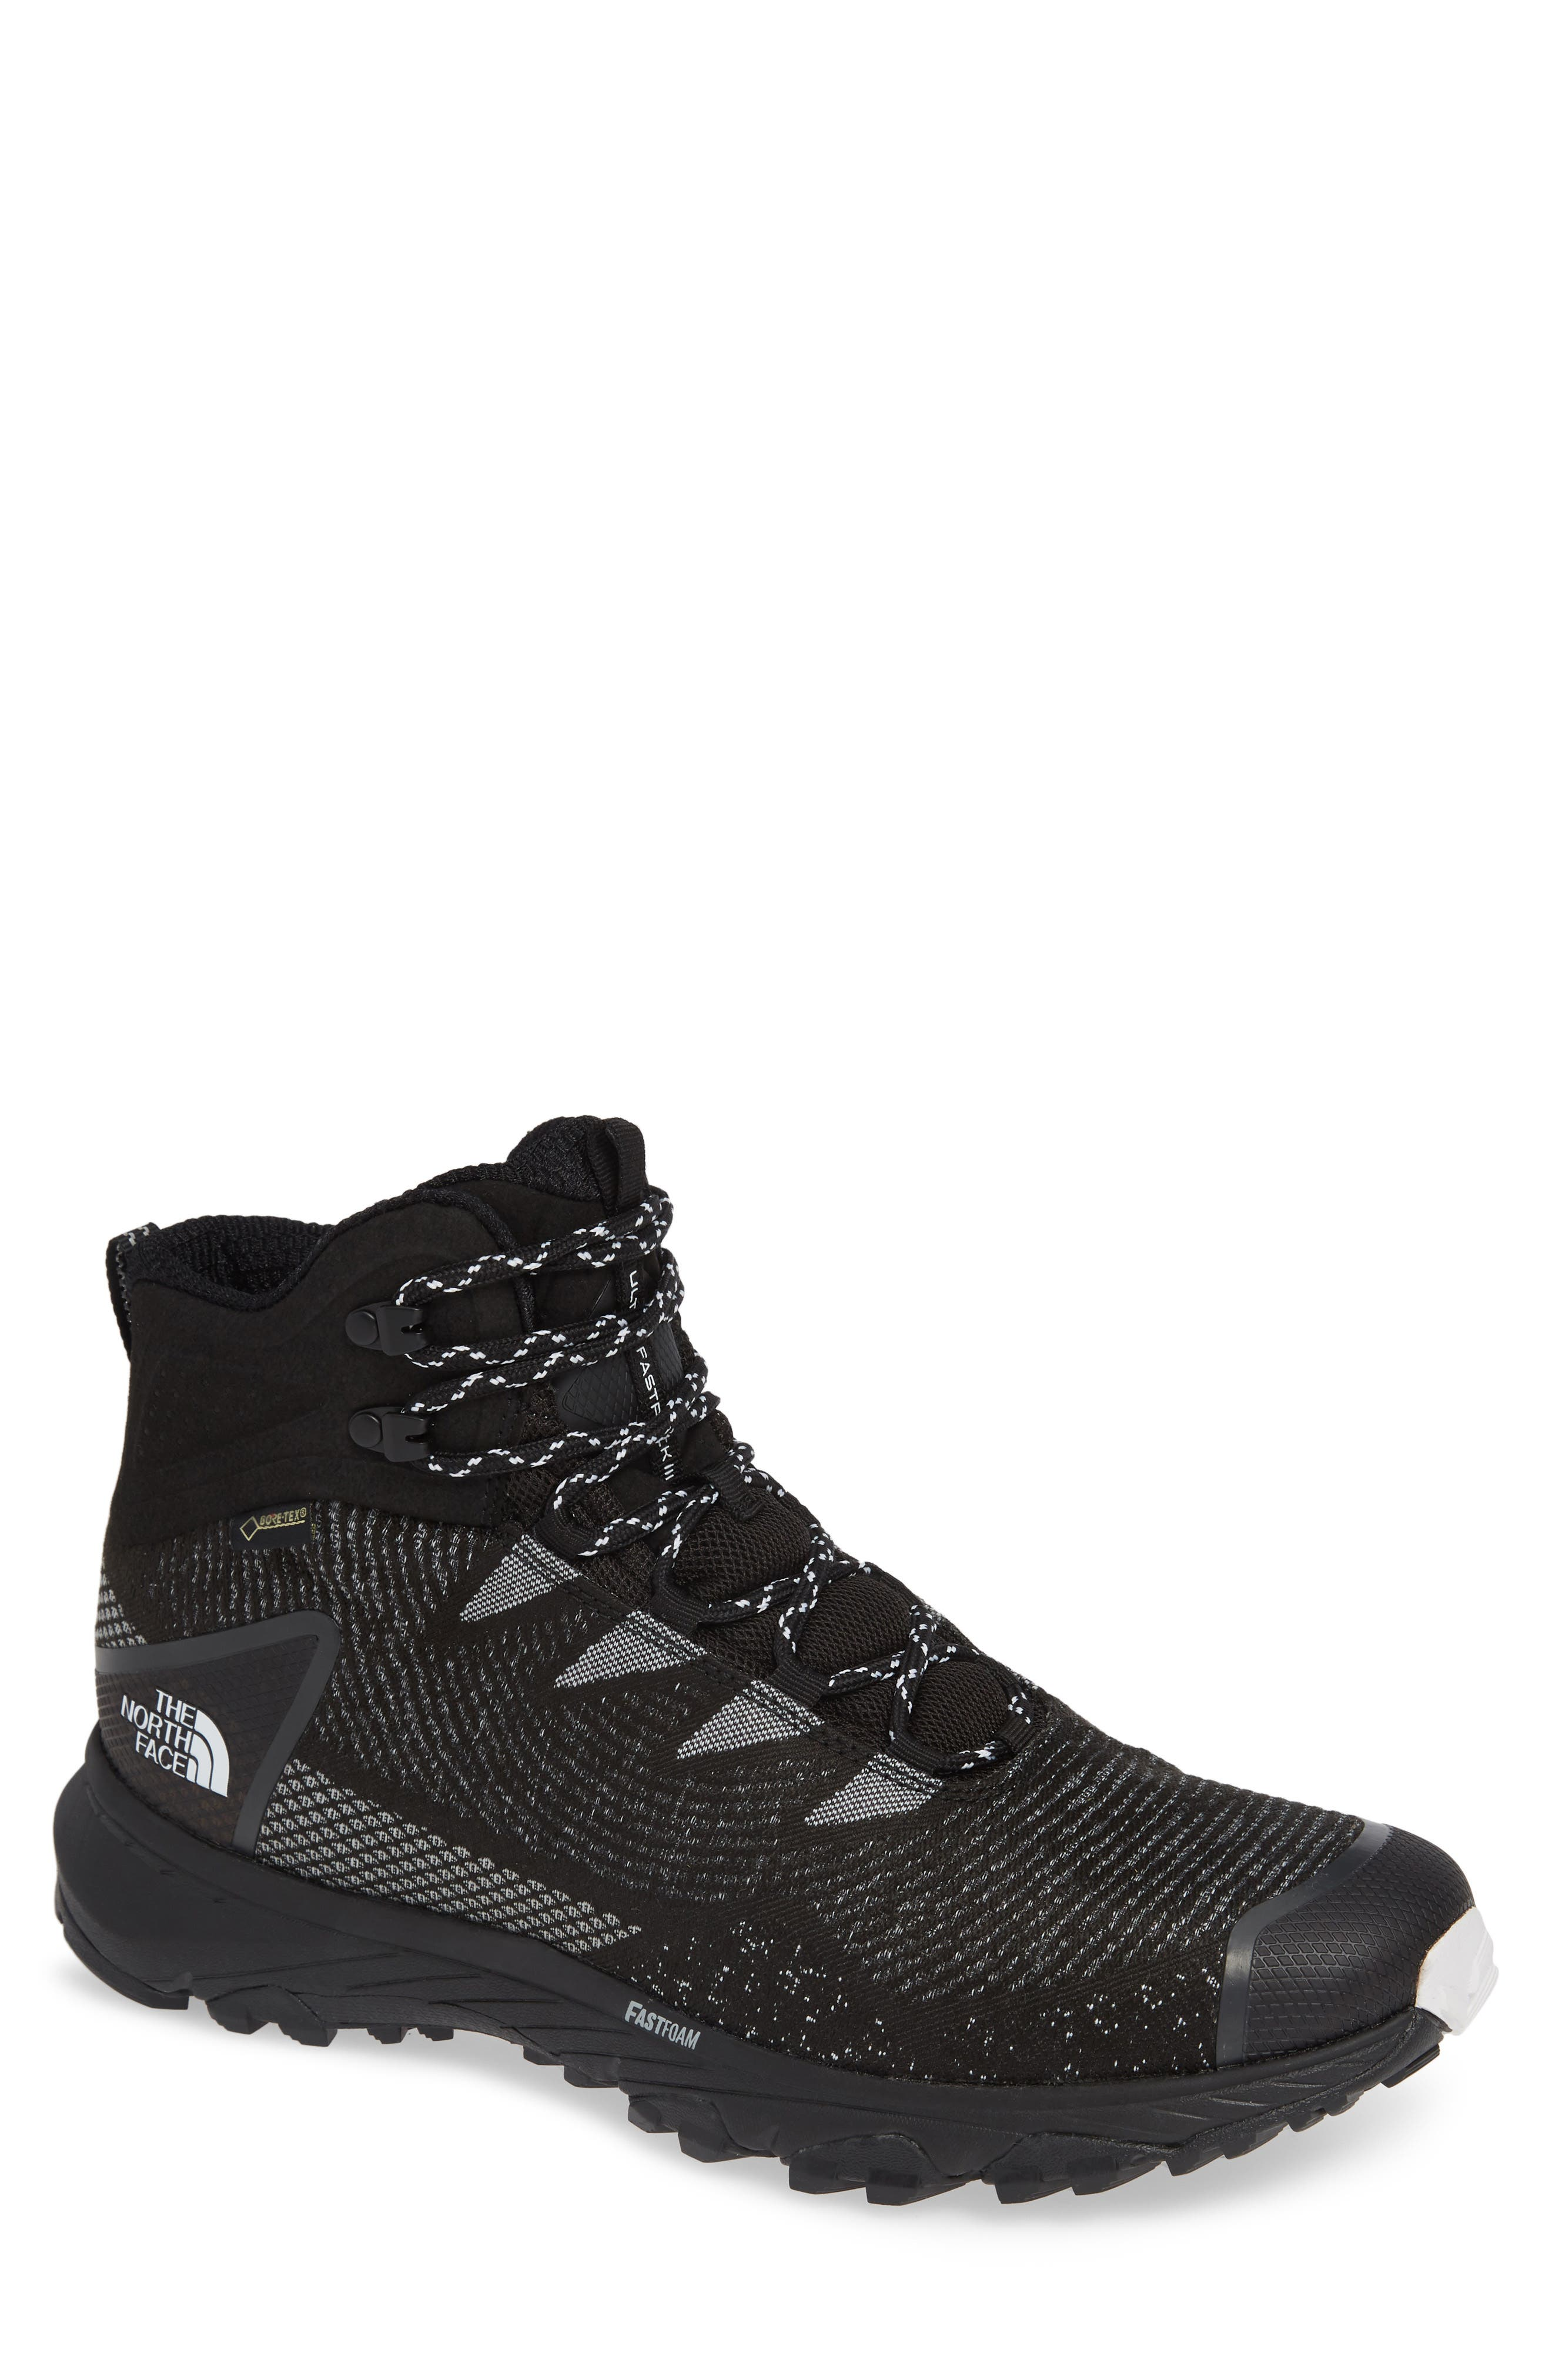 Ultra Fastpack III Mid Gore-Tex<sup>®</sup> Hiking Boot,                         Main,                         color, BLACK/ WHITE